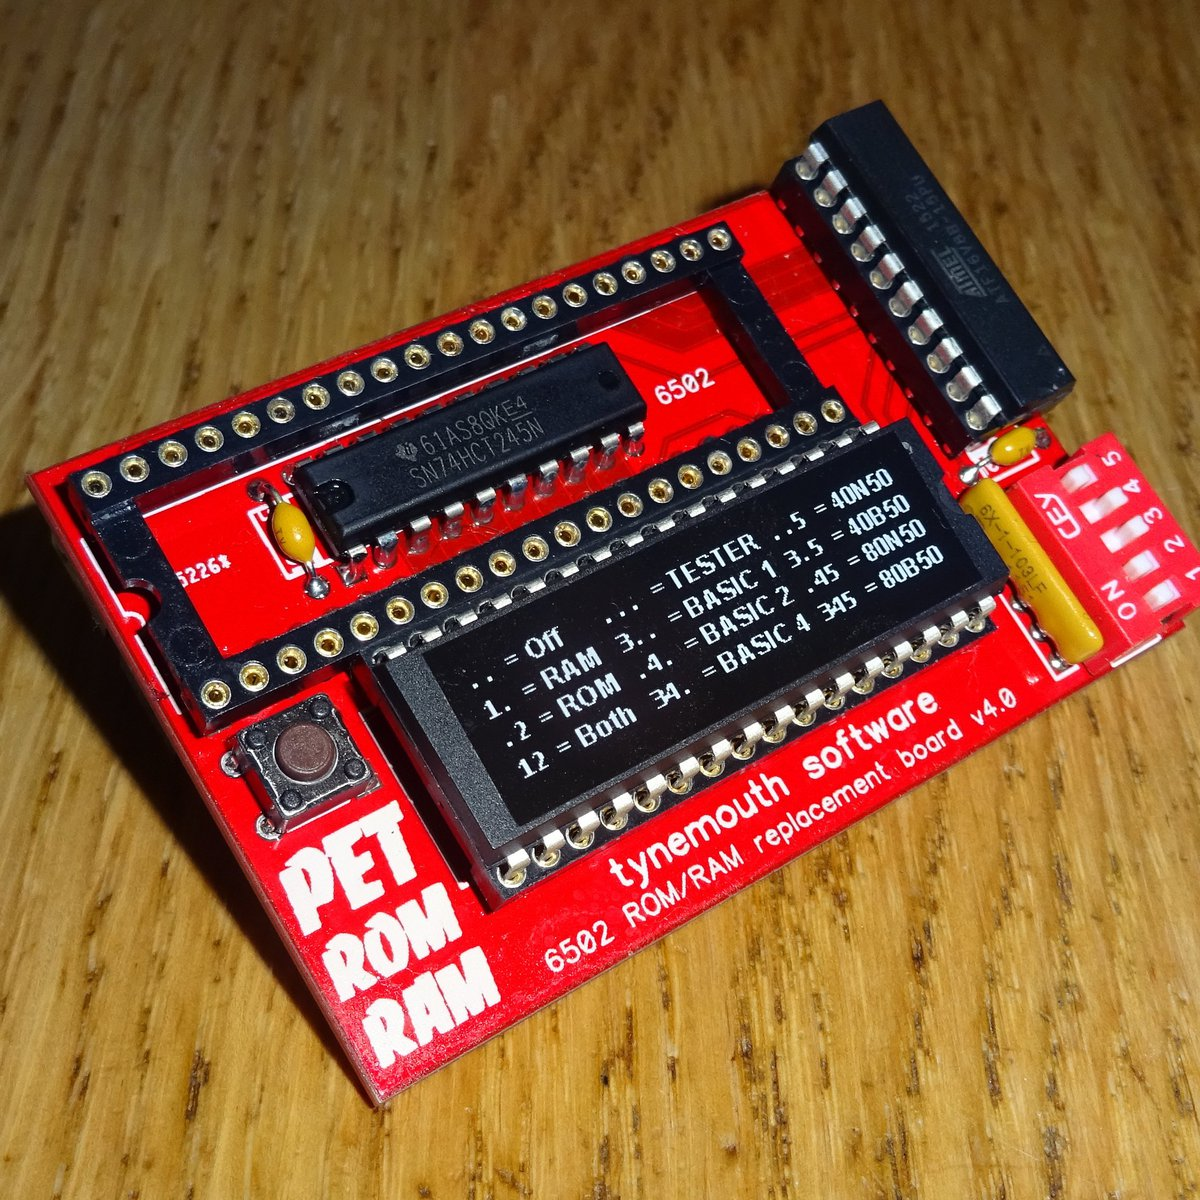 ROM/RAM replacement board for Commodore PET from Tynemouth Software